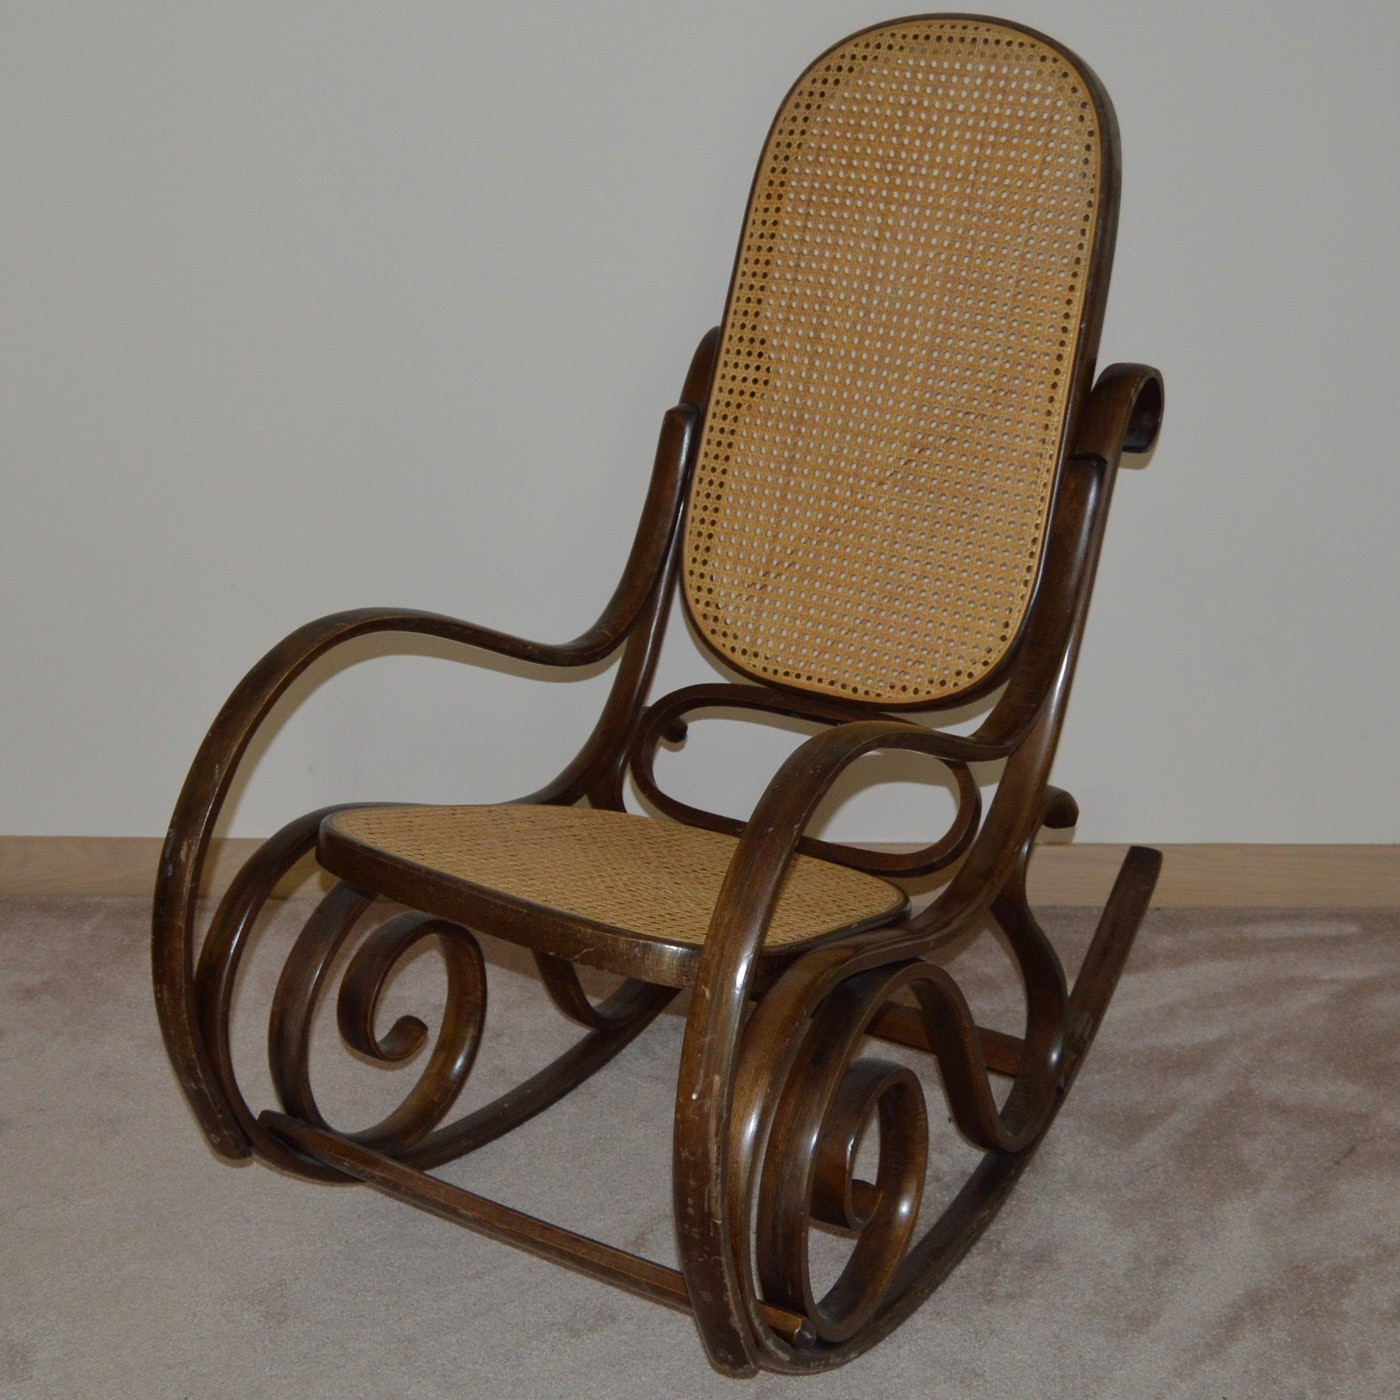 Thonet Style Bentwood Cane Rocking Chair Ebth